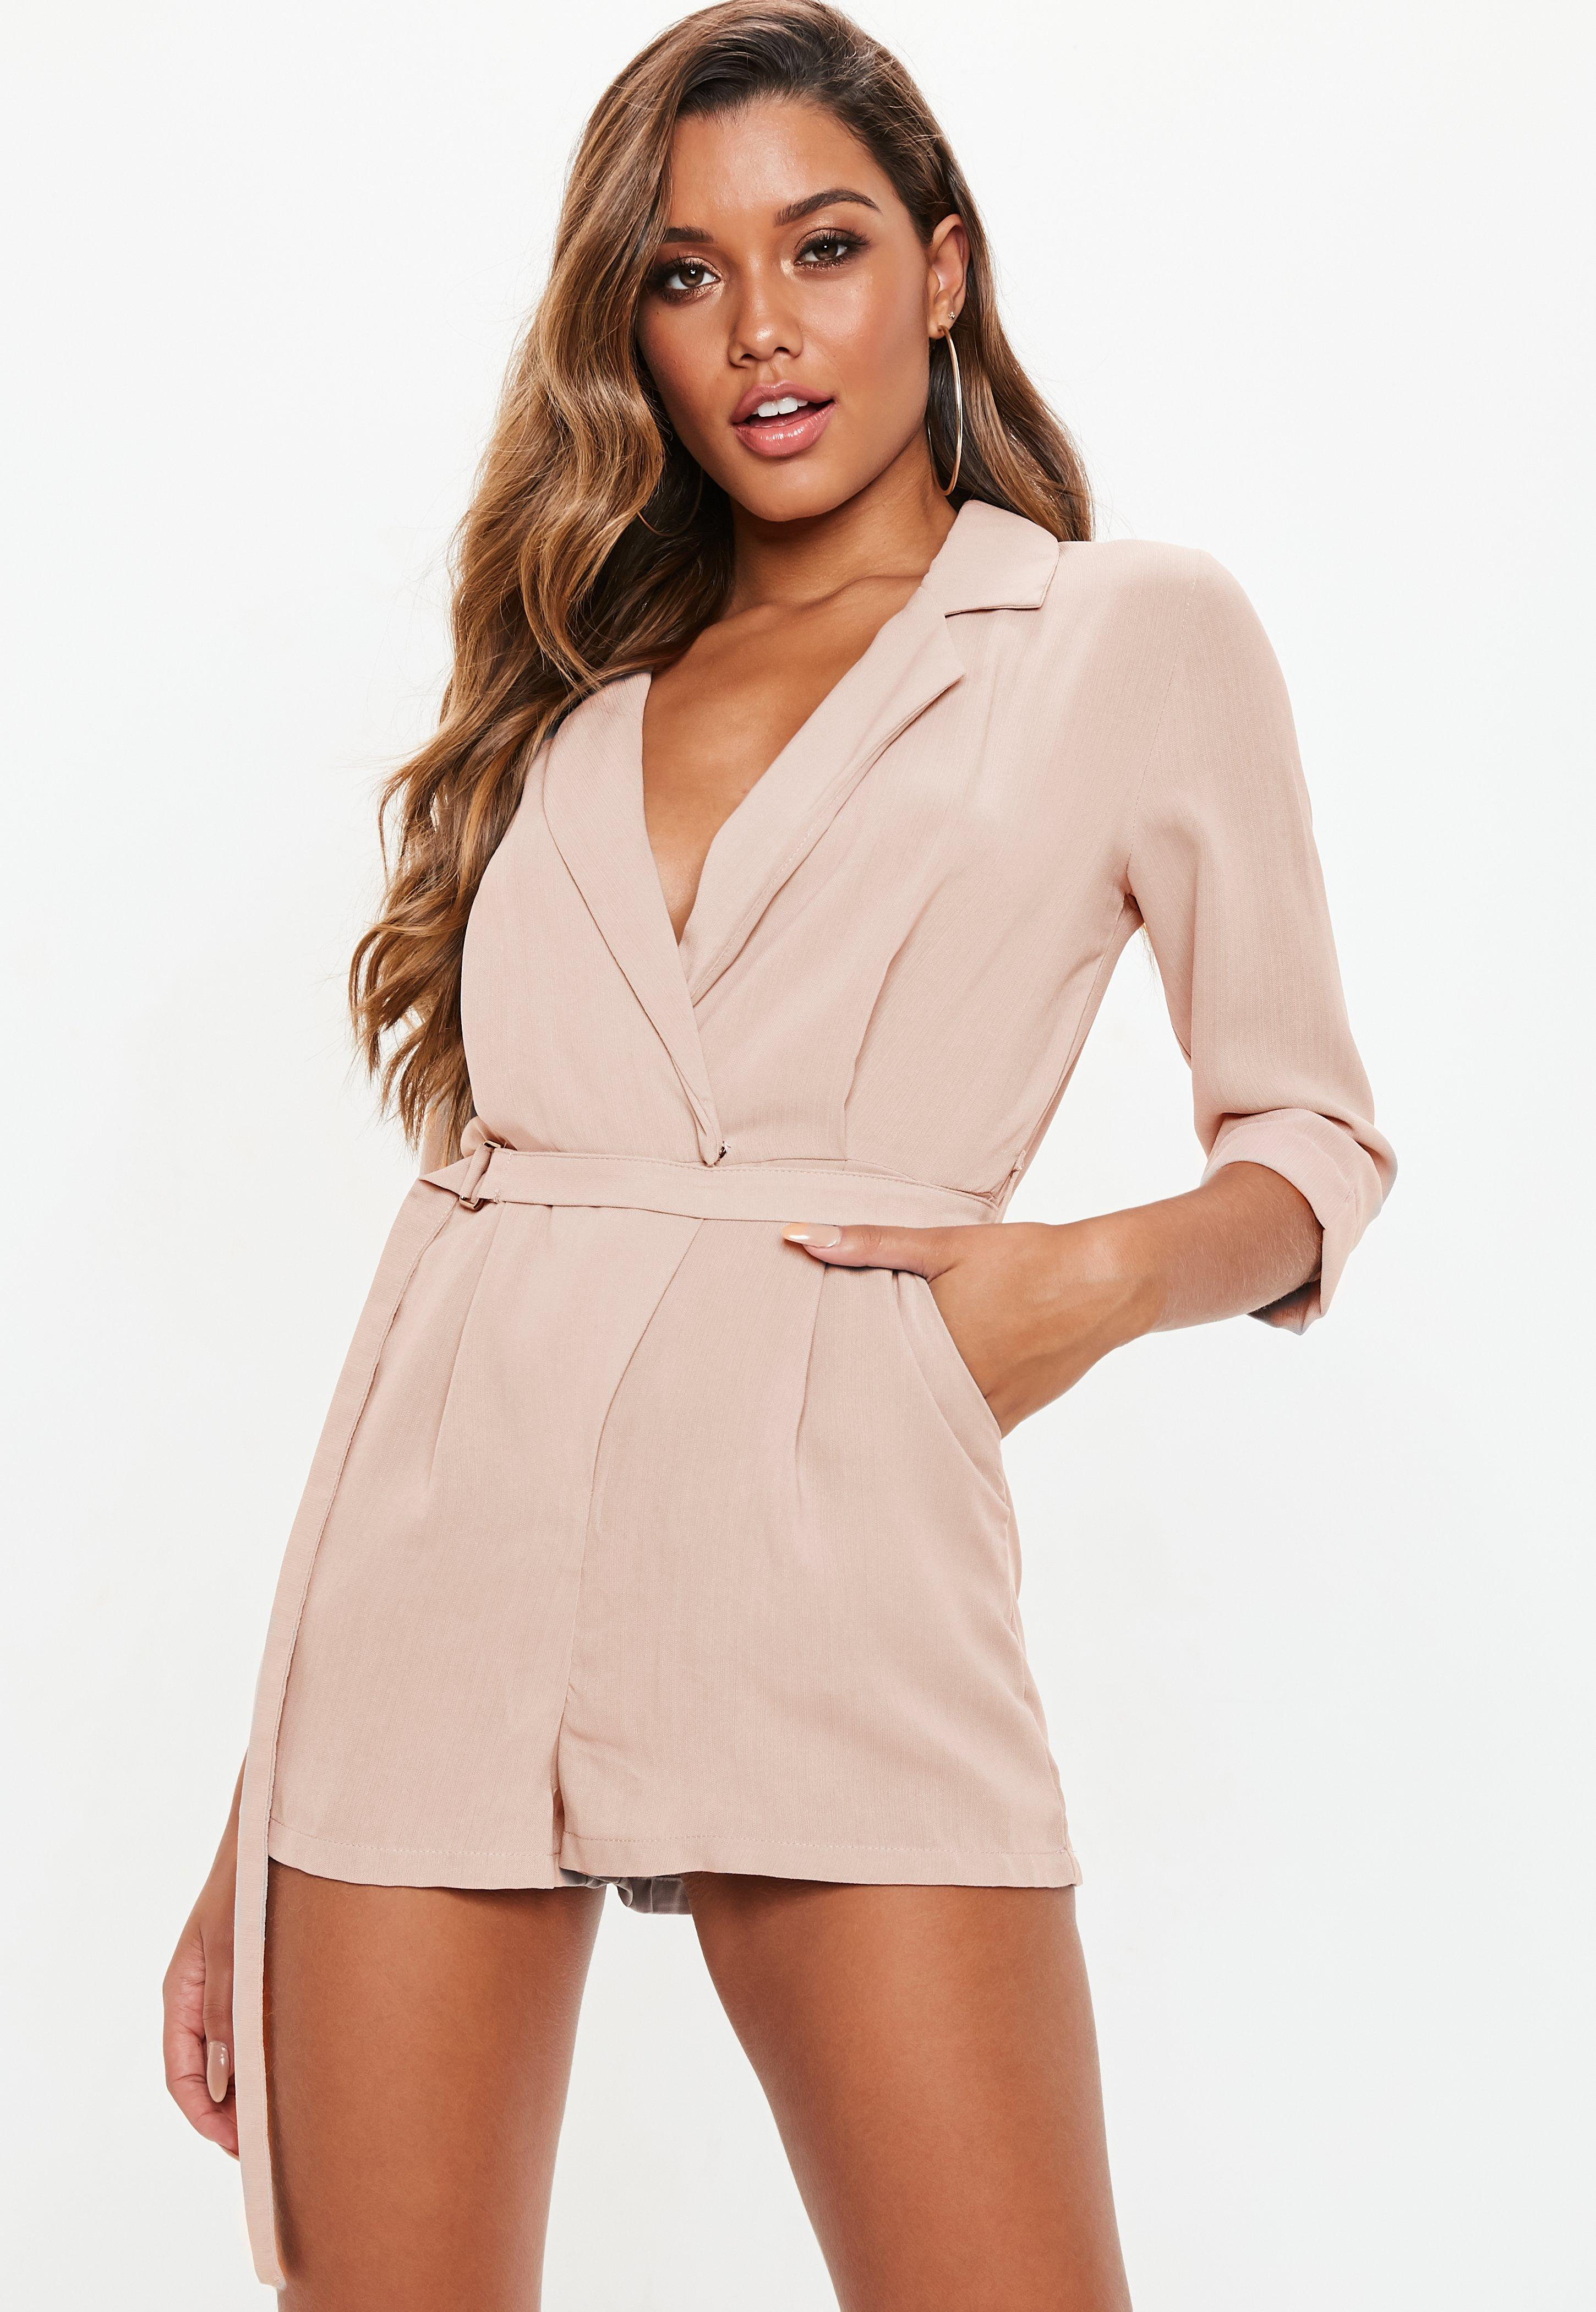 8c0e0ec49c7e Rompers for Women - off the Shoulder Rompers 2019